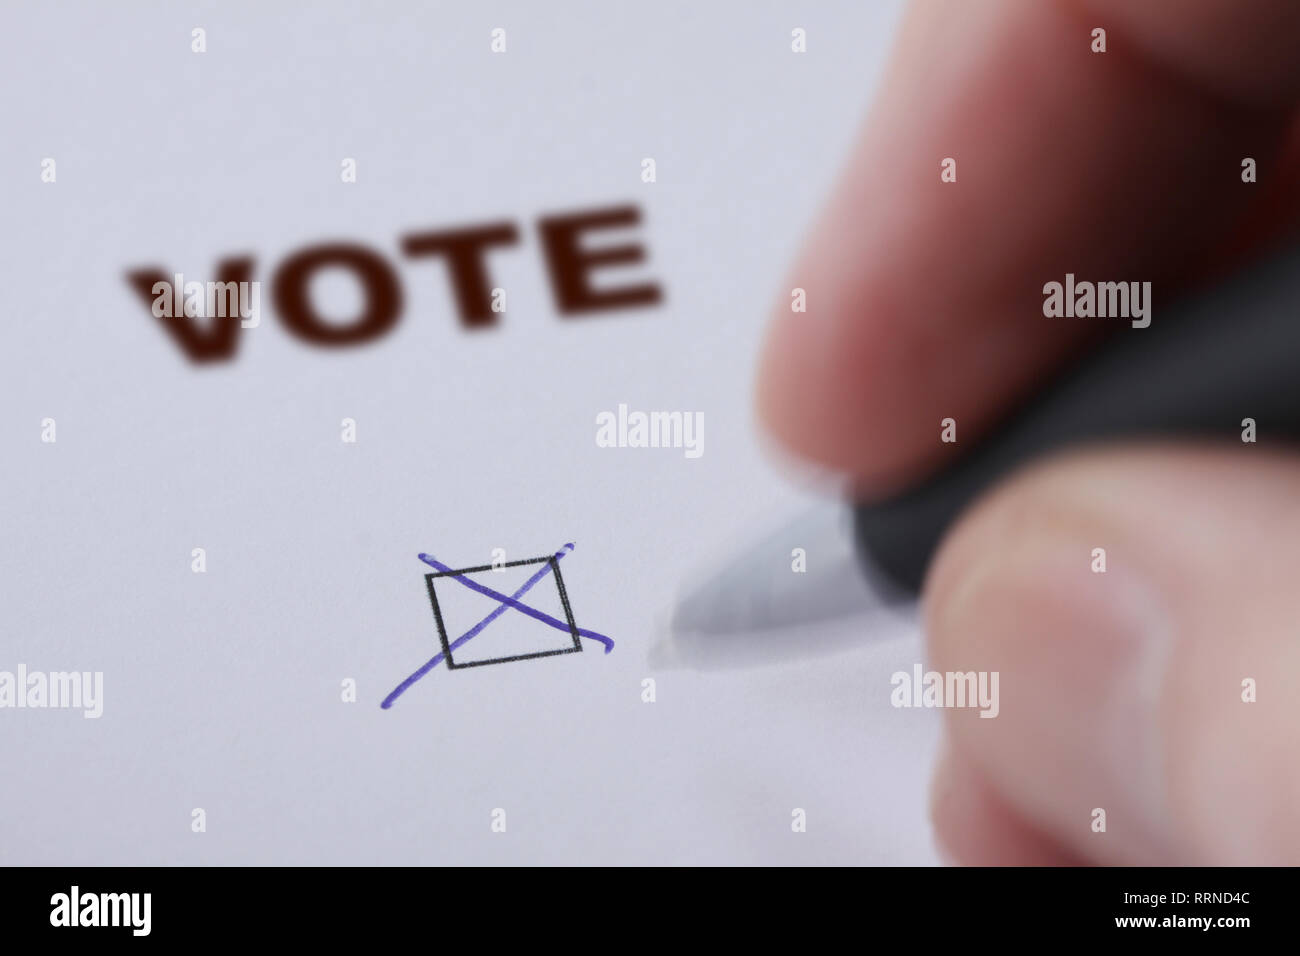 Hand of man voting - sets mark in check box with pen - hand and pen delibetrately blurred - Stock Image